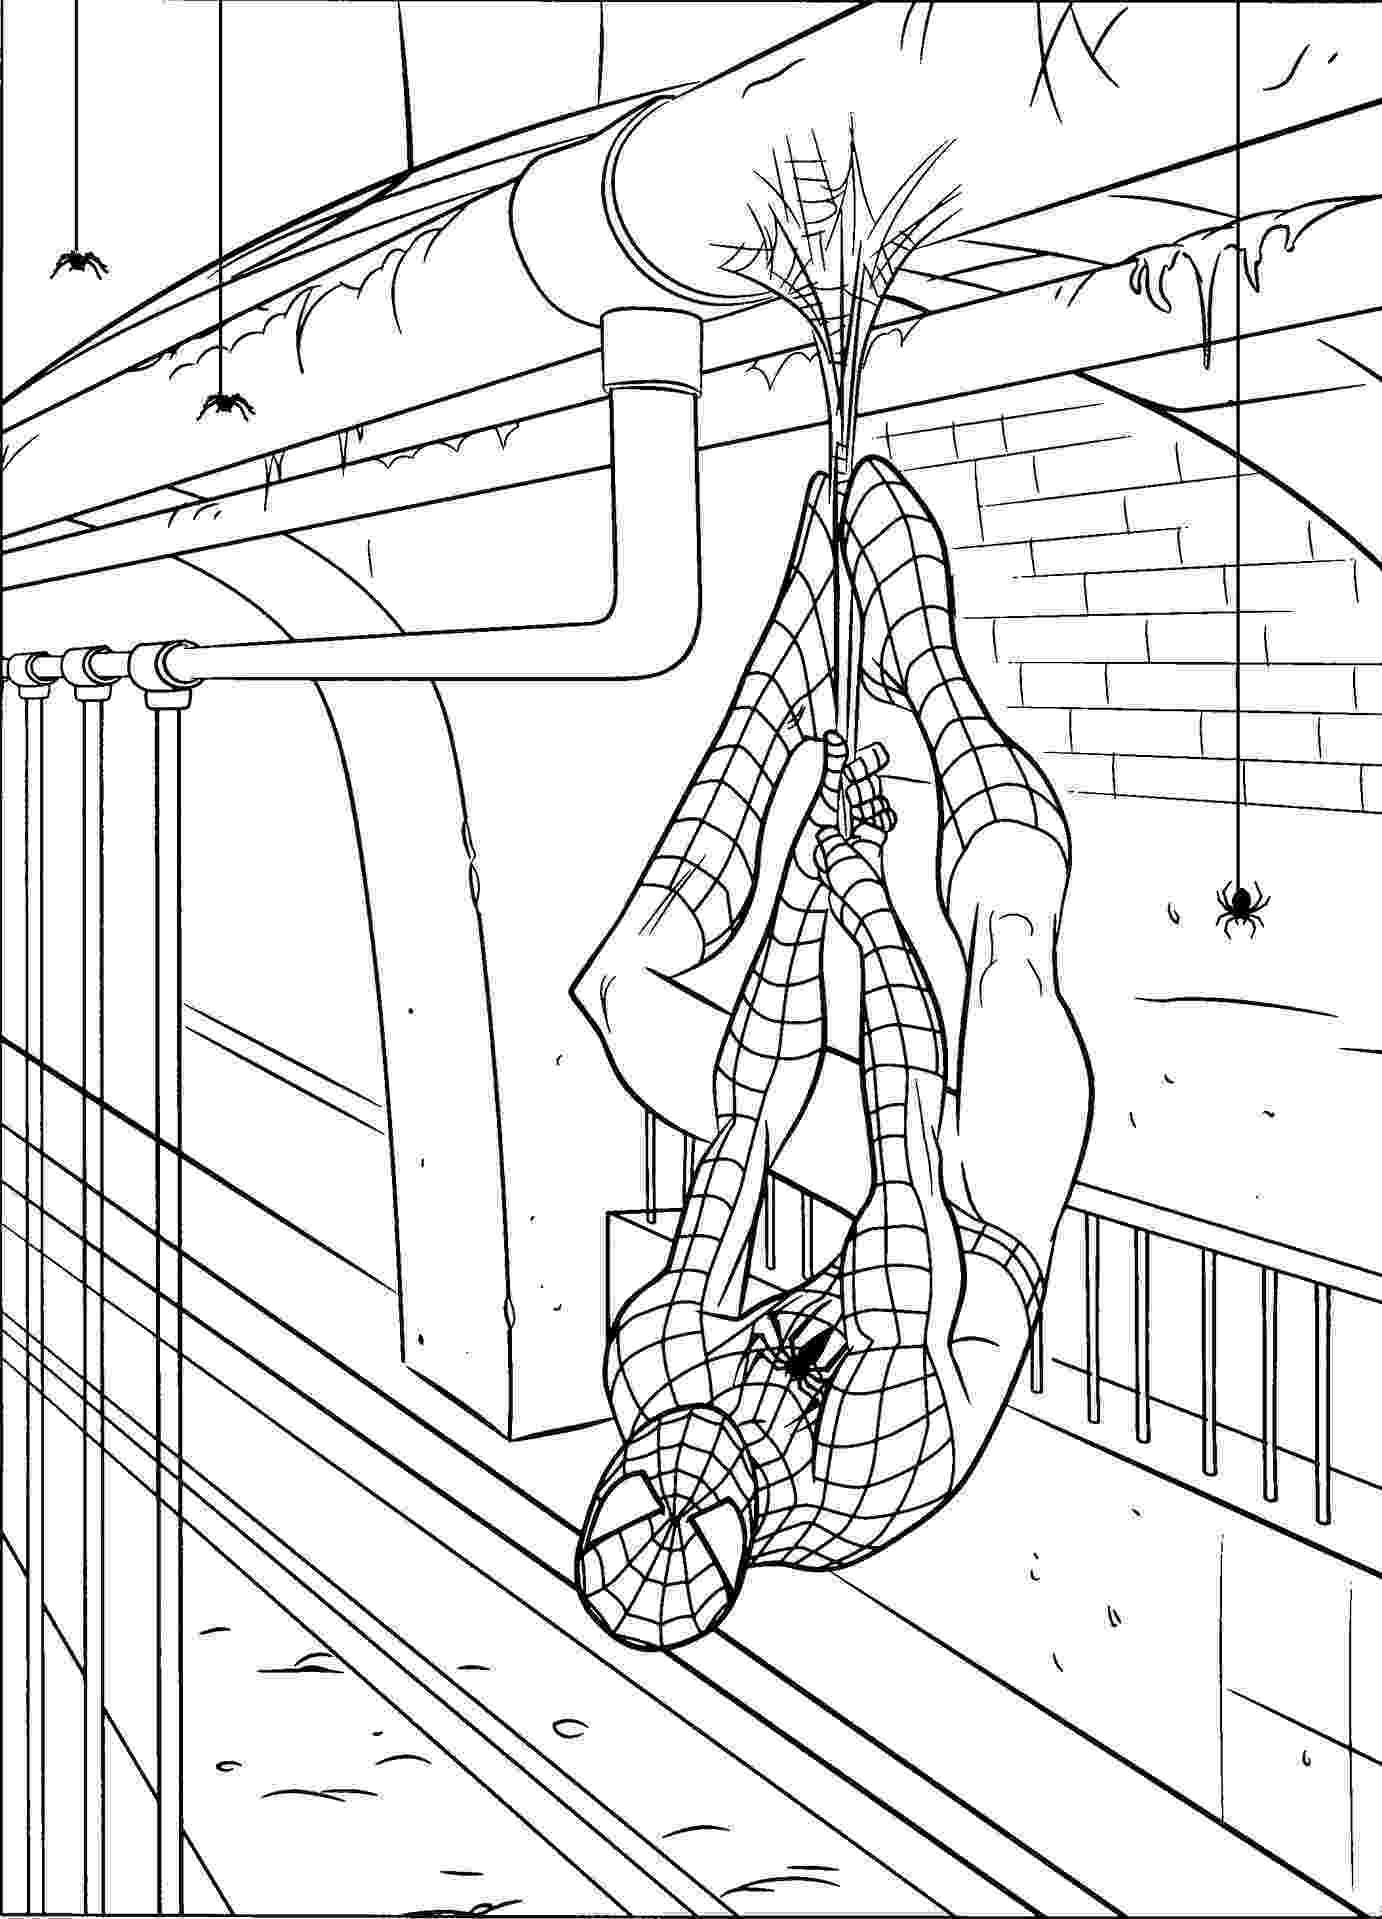 free printable spiderman coloring pages coloring pages spiderman free printable coloring pages spiderman printable coloring pages free